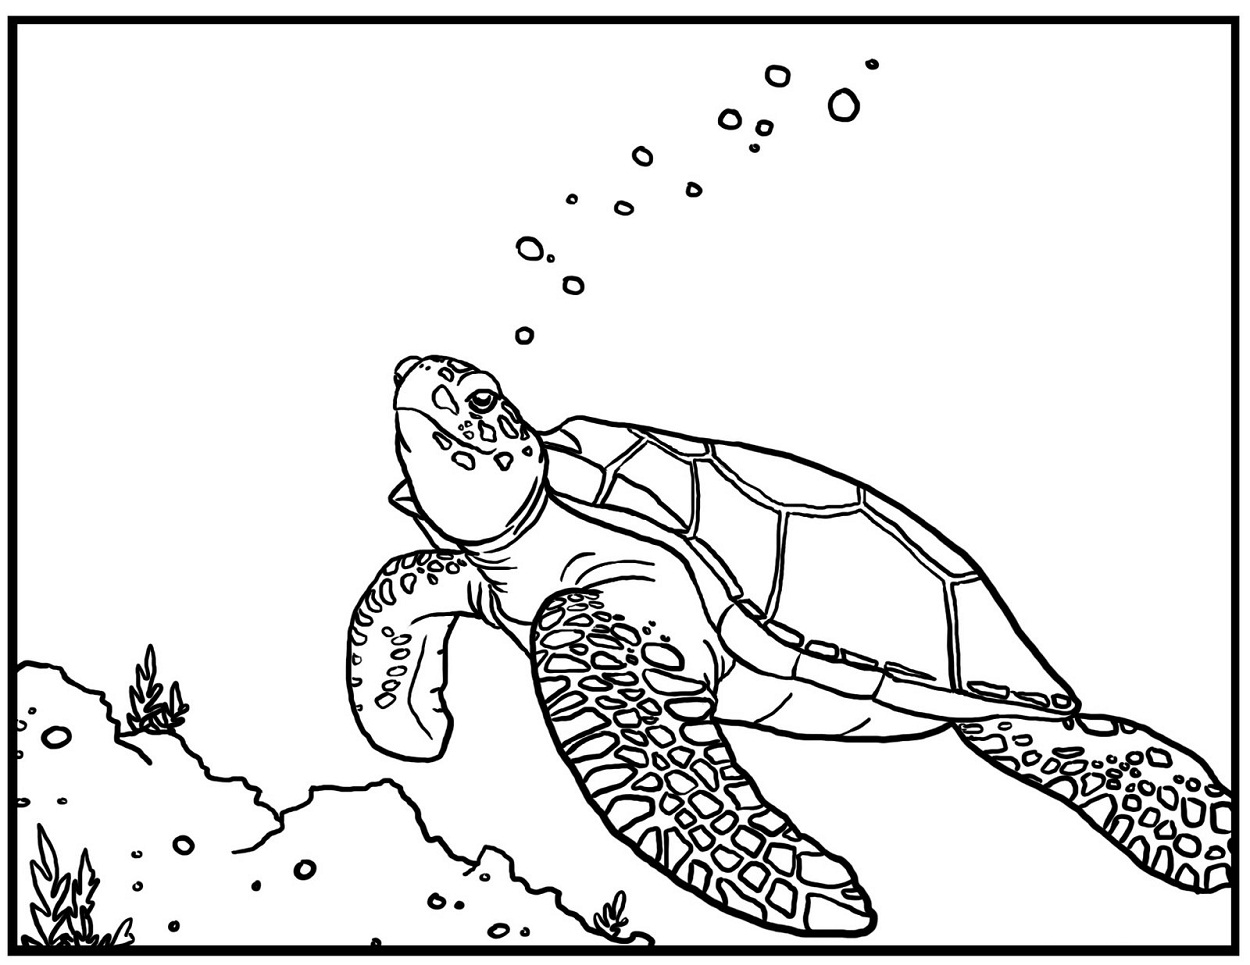 turtle pictures for coloring turtle pictures for coloring coloring pictures for turtle